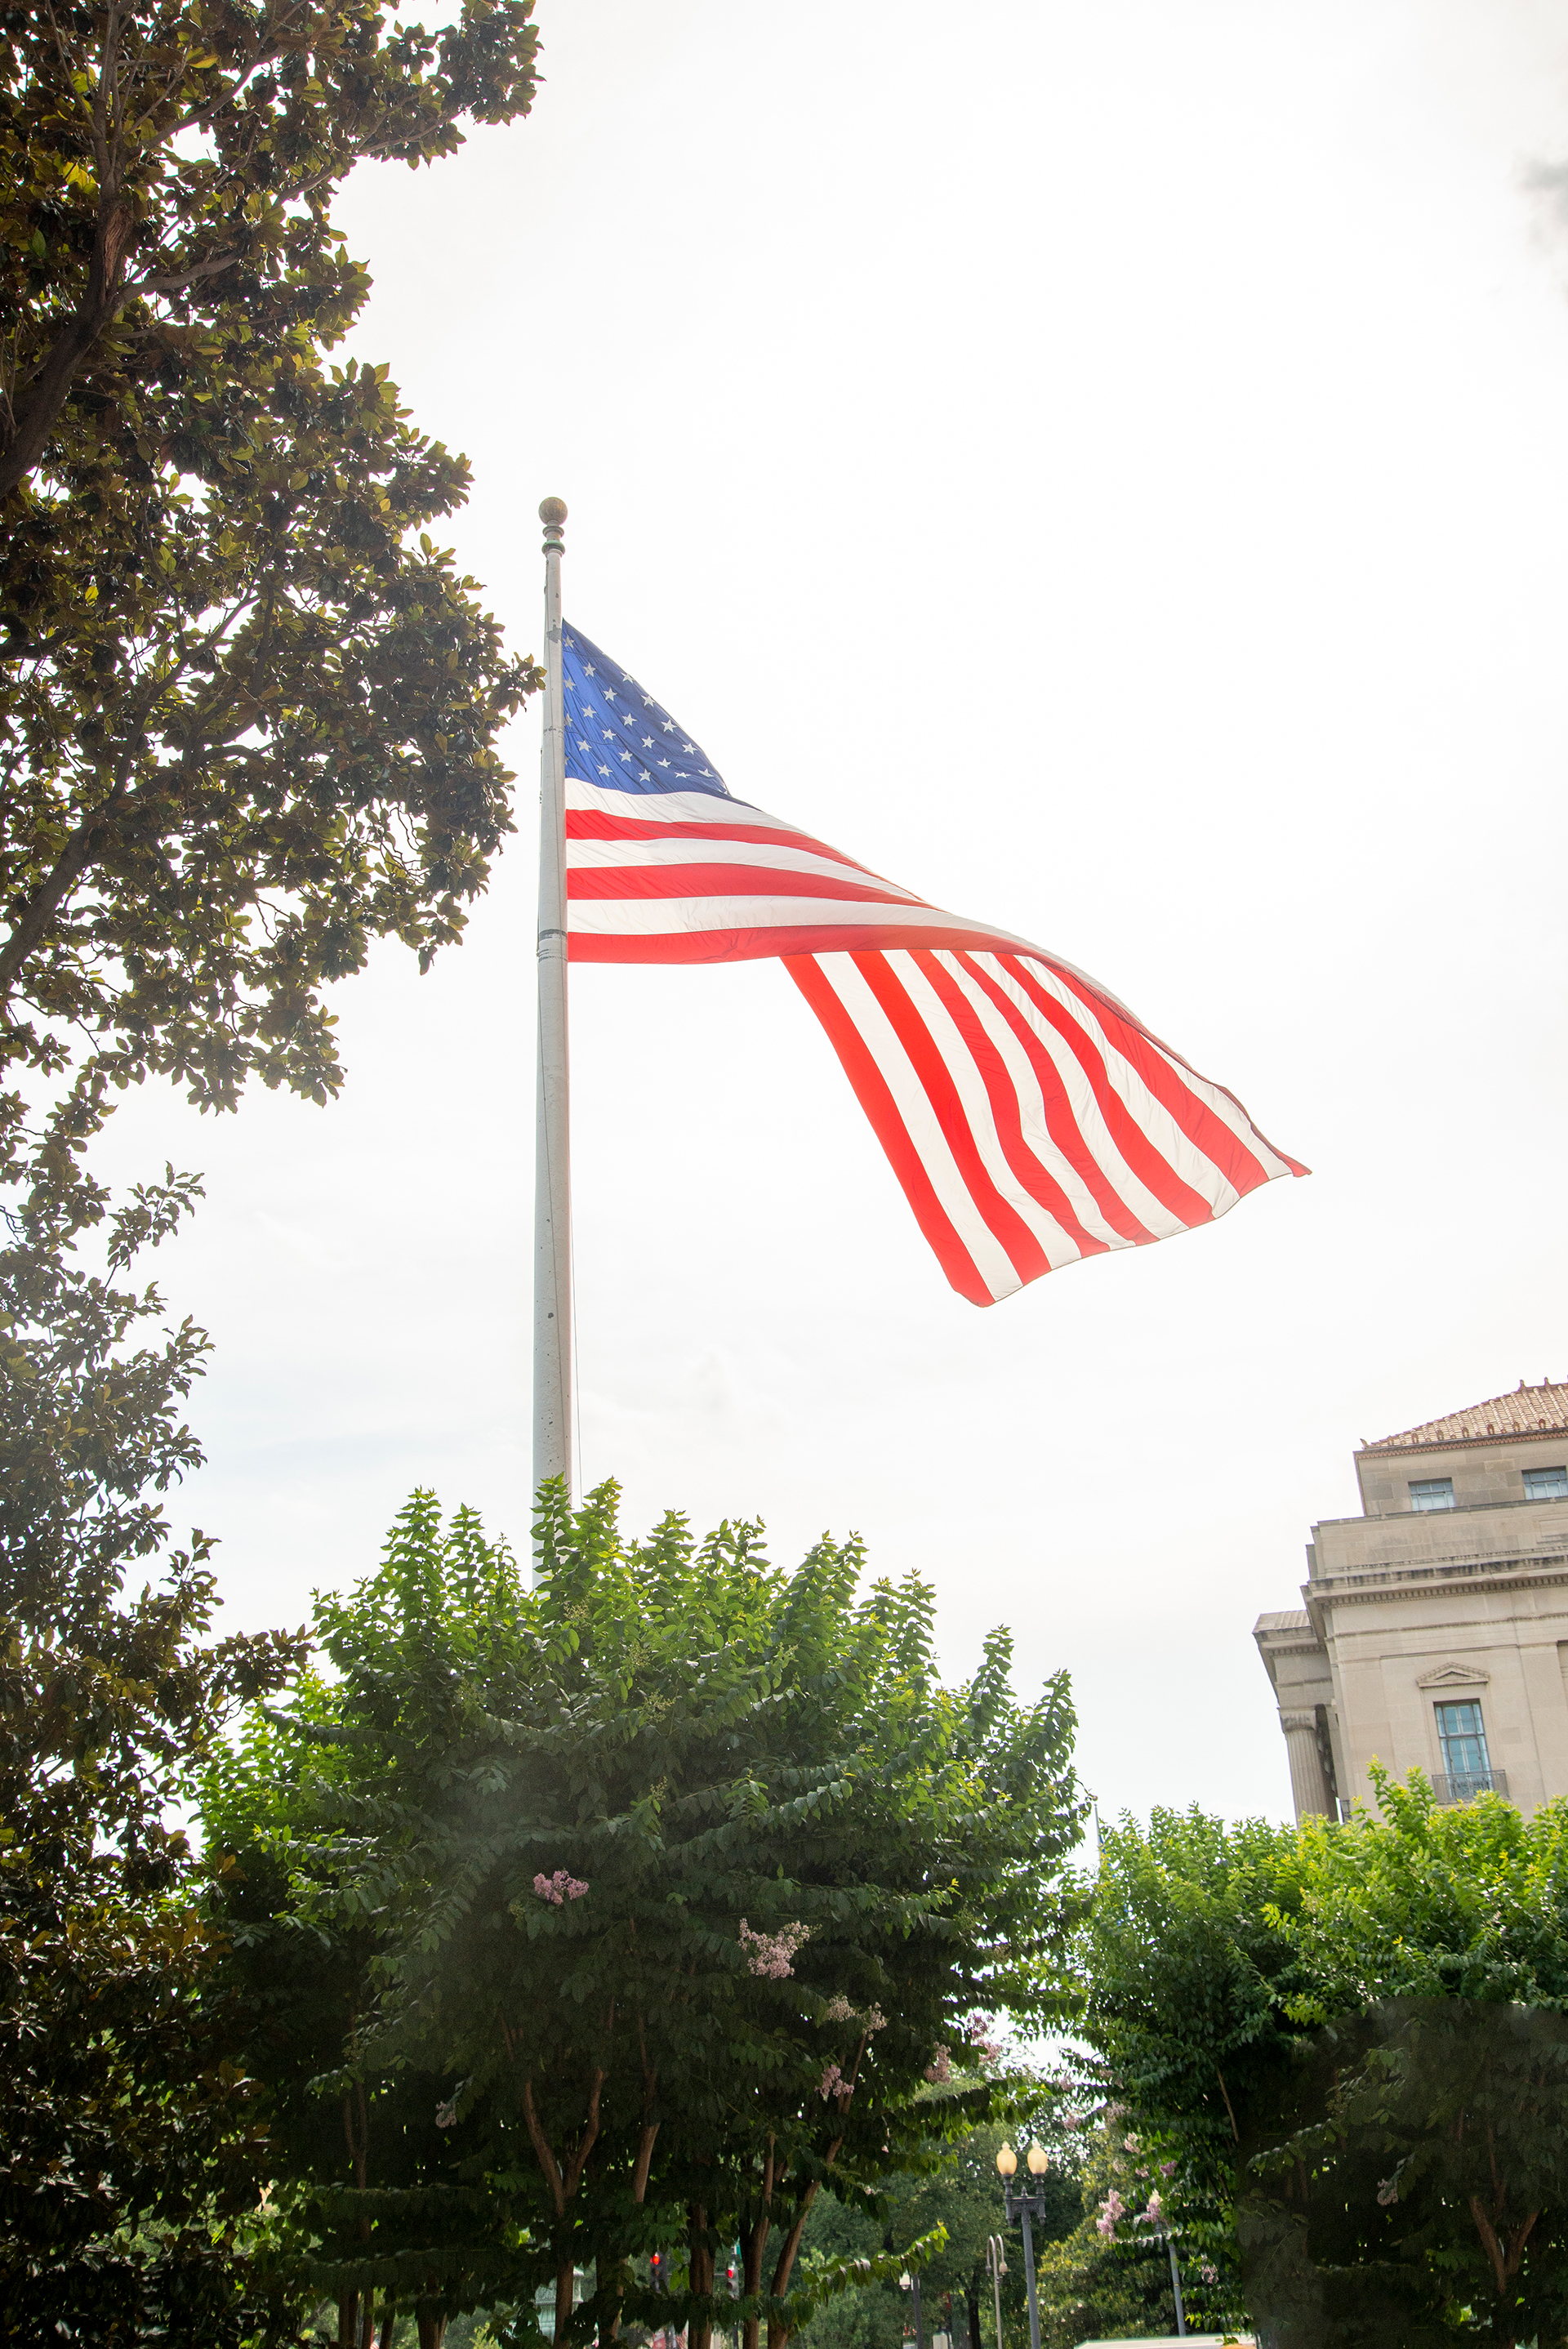 Guide to Washington D.C. on the 4th of July